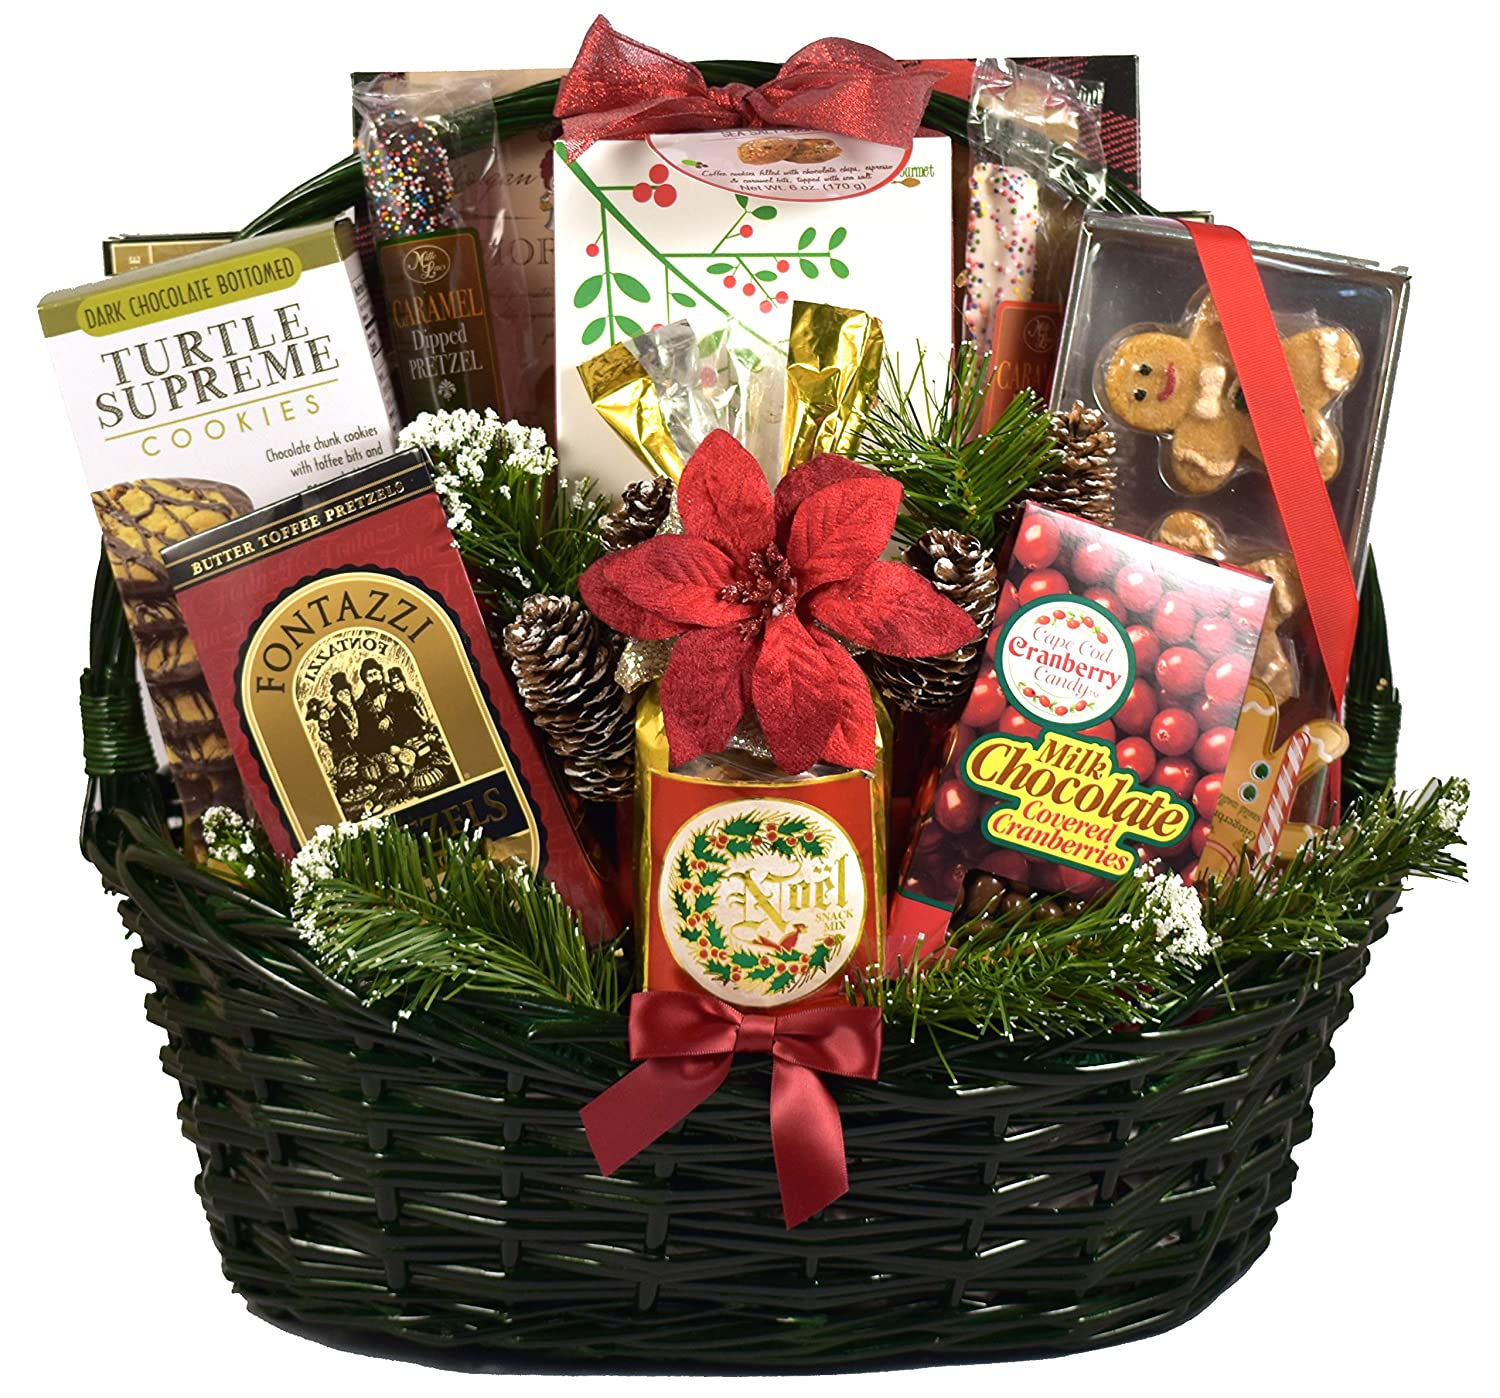 Special Holiday Edition Tis Season For >> Amazon Com Tis The Season Christmas Gift Basket Loaded With